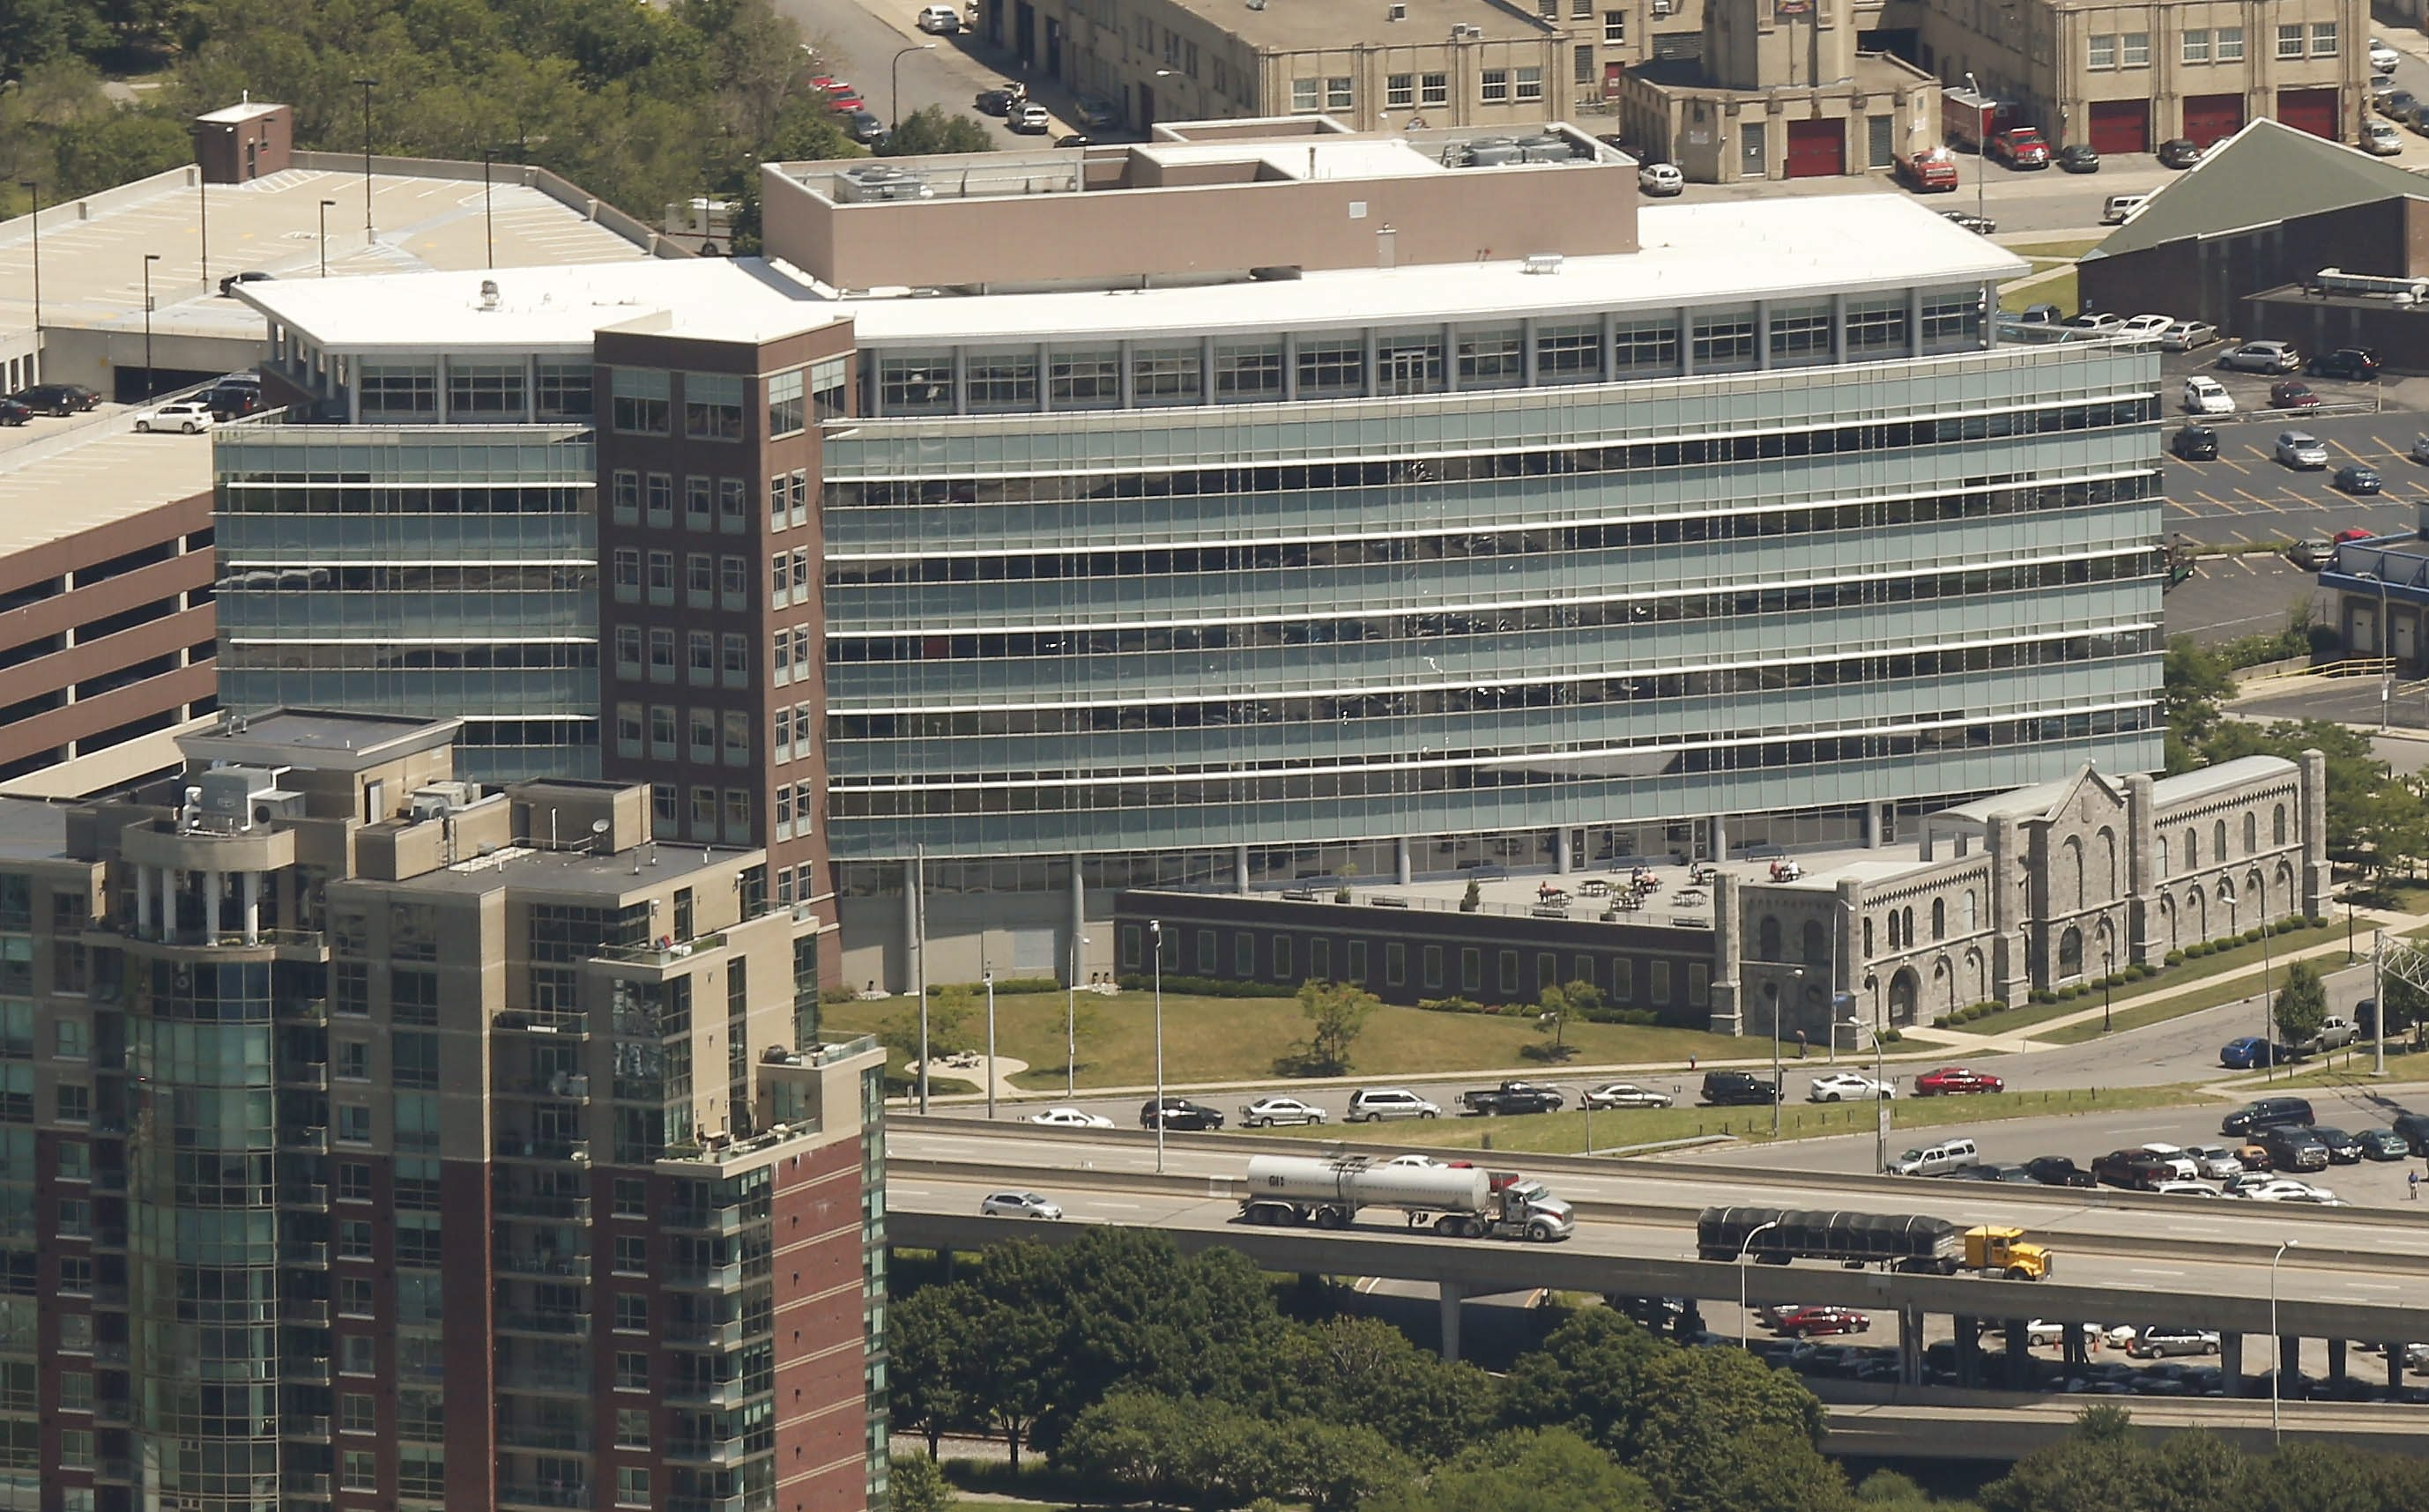 BlueCross BlueShield of Western New York, whose headquarters are in downtown Buffalo, saw its parent company, HealthNow New York, report a $69.4 million operating loss for 2014. Excellus, parent of Univera Healthcare, reported a $55.3 million loss.